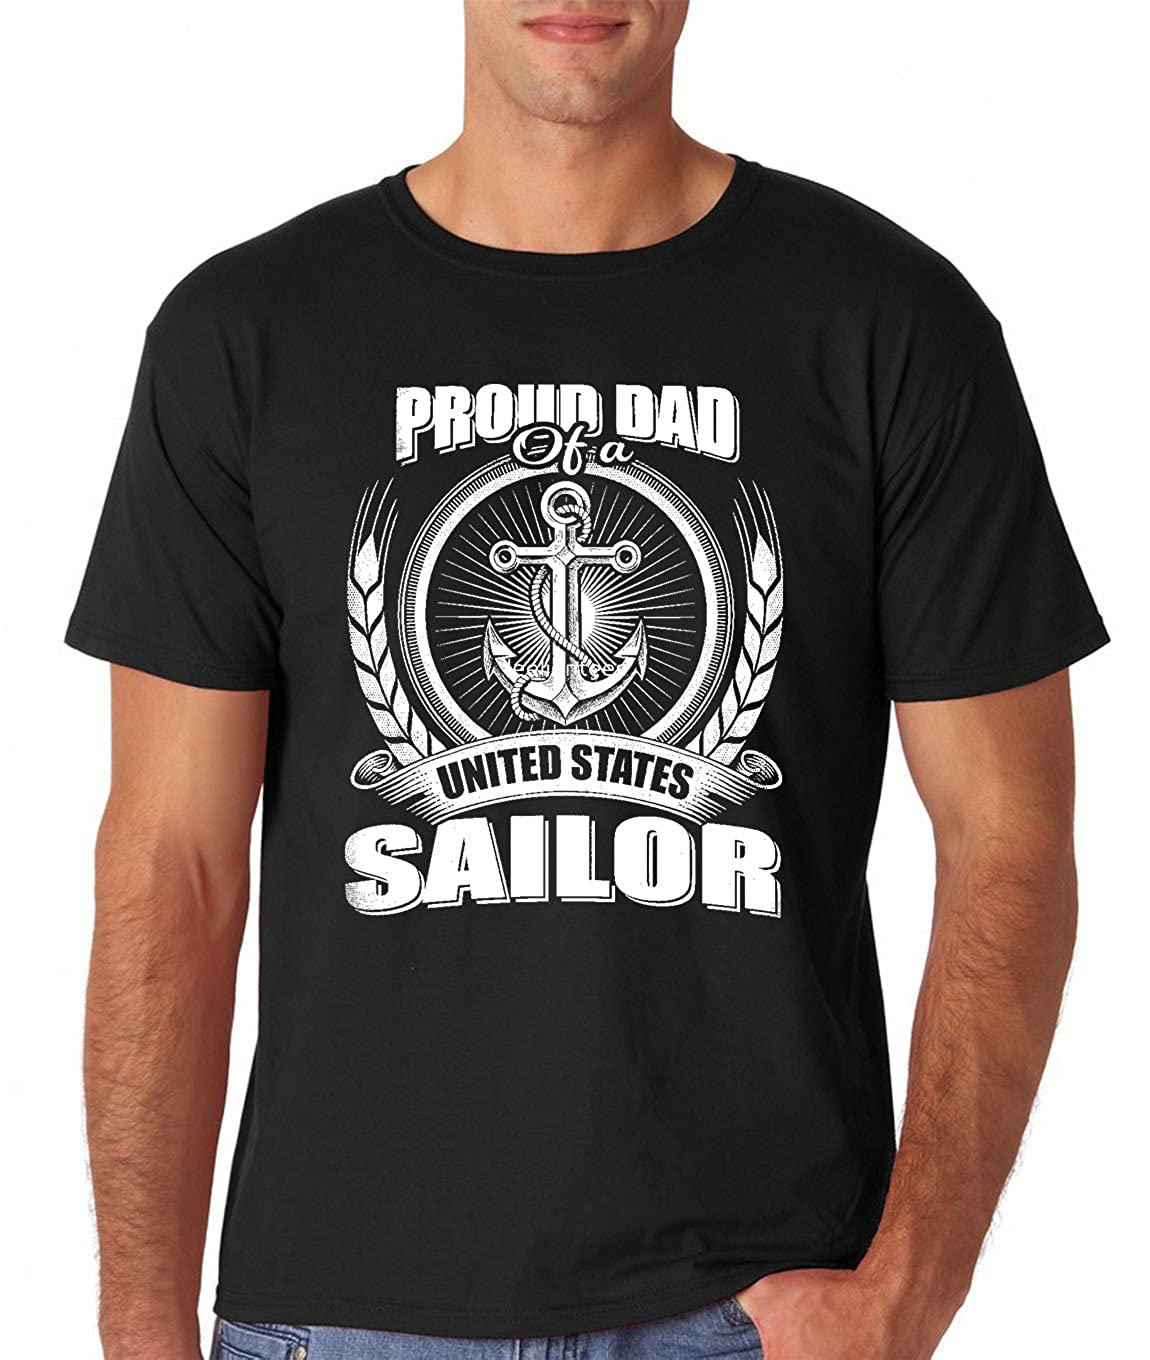 Amazon.com: AW Fashions Proud Dad of a United States Sailor Tee for Dads Birthday Mens T-Shirt: Clothing